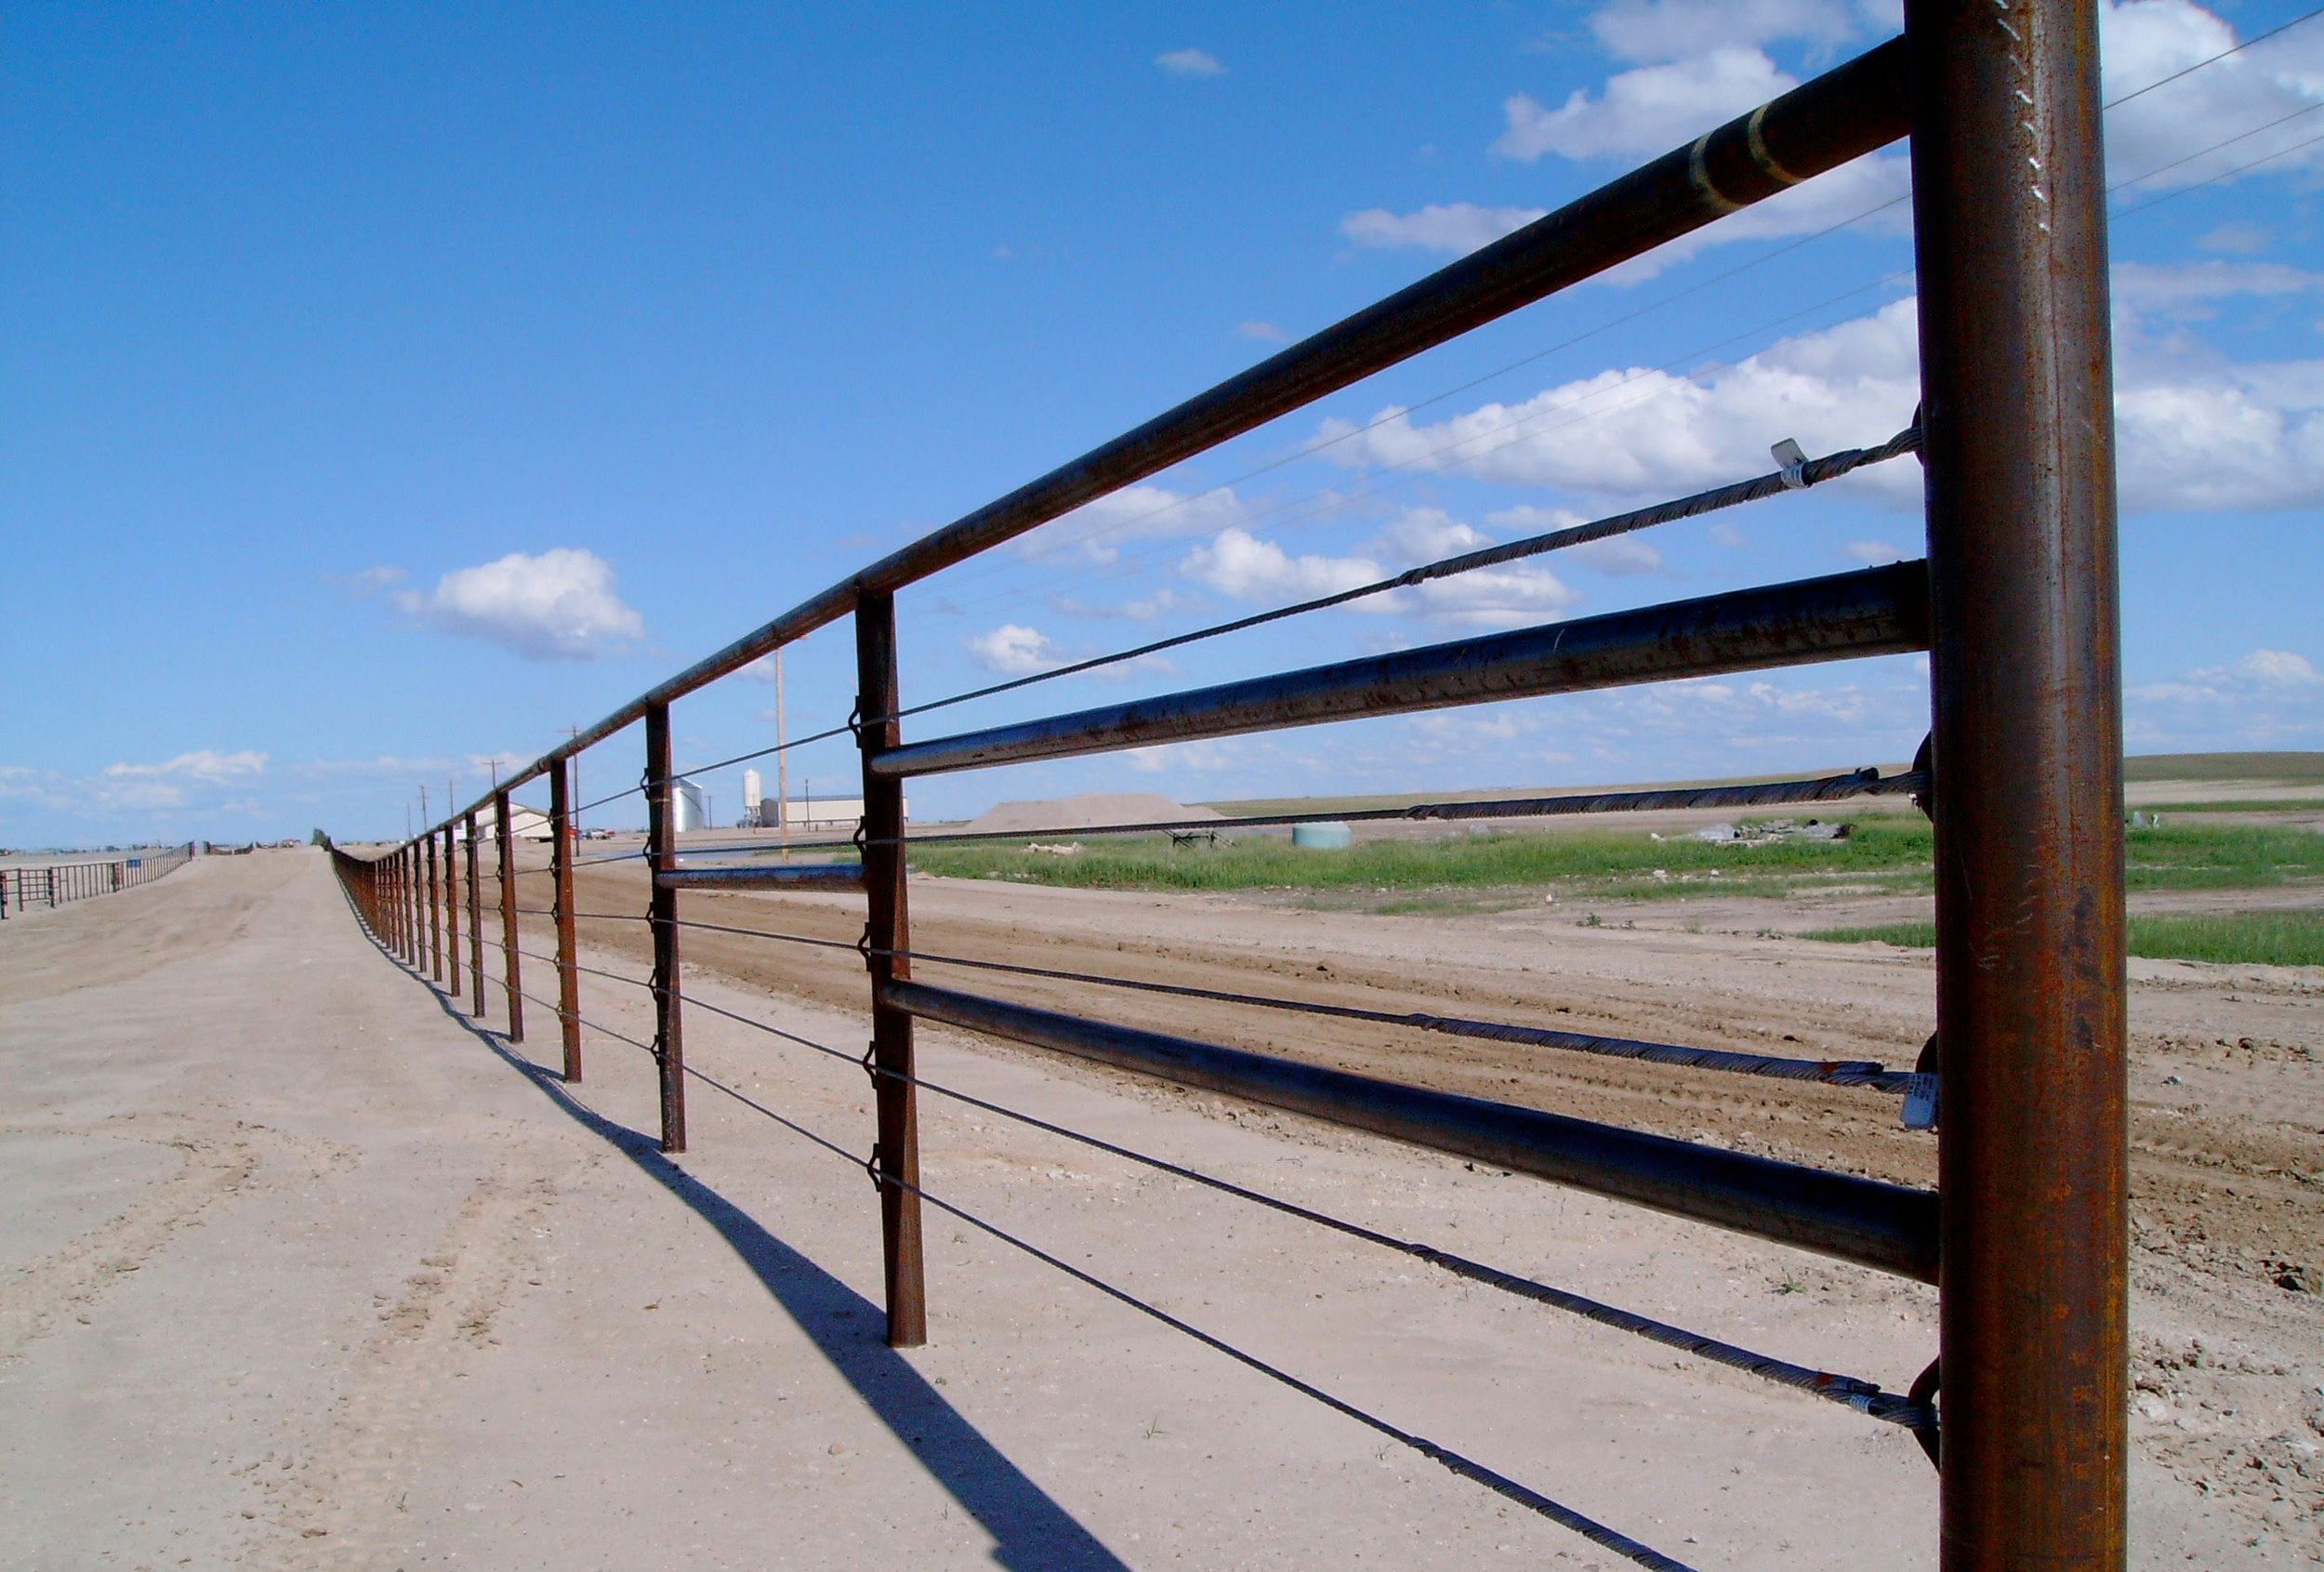 A long stretch of cable fence.